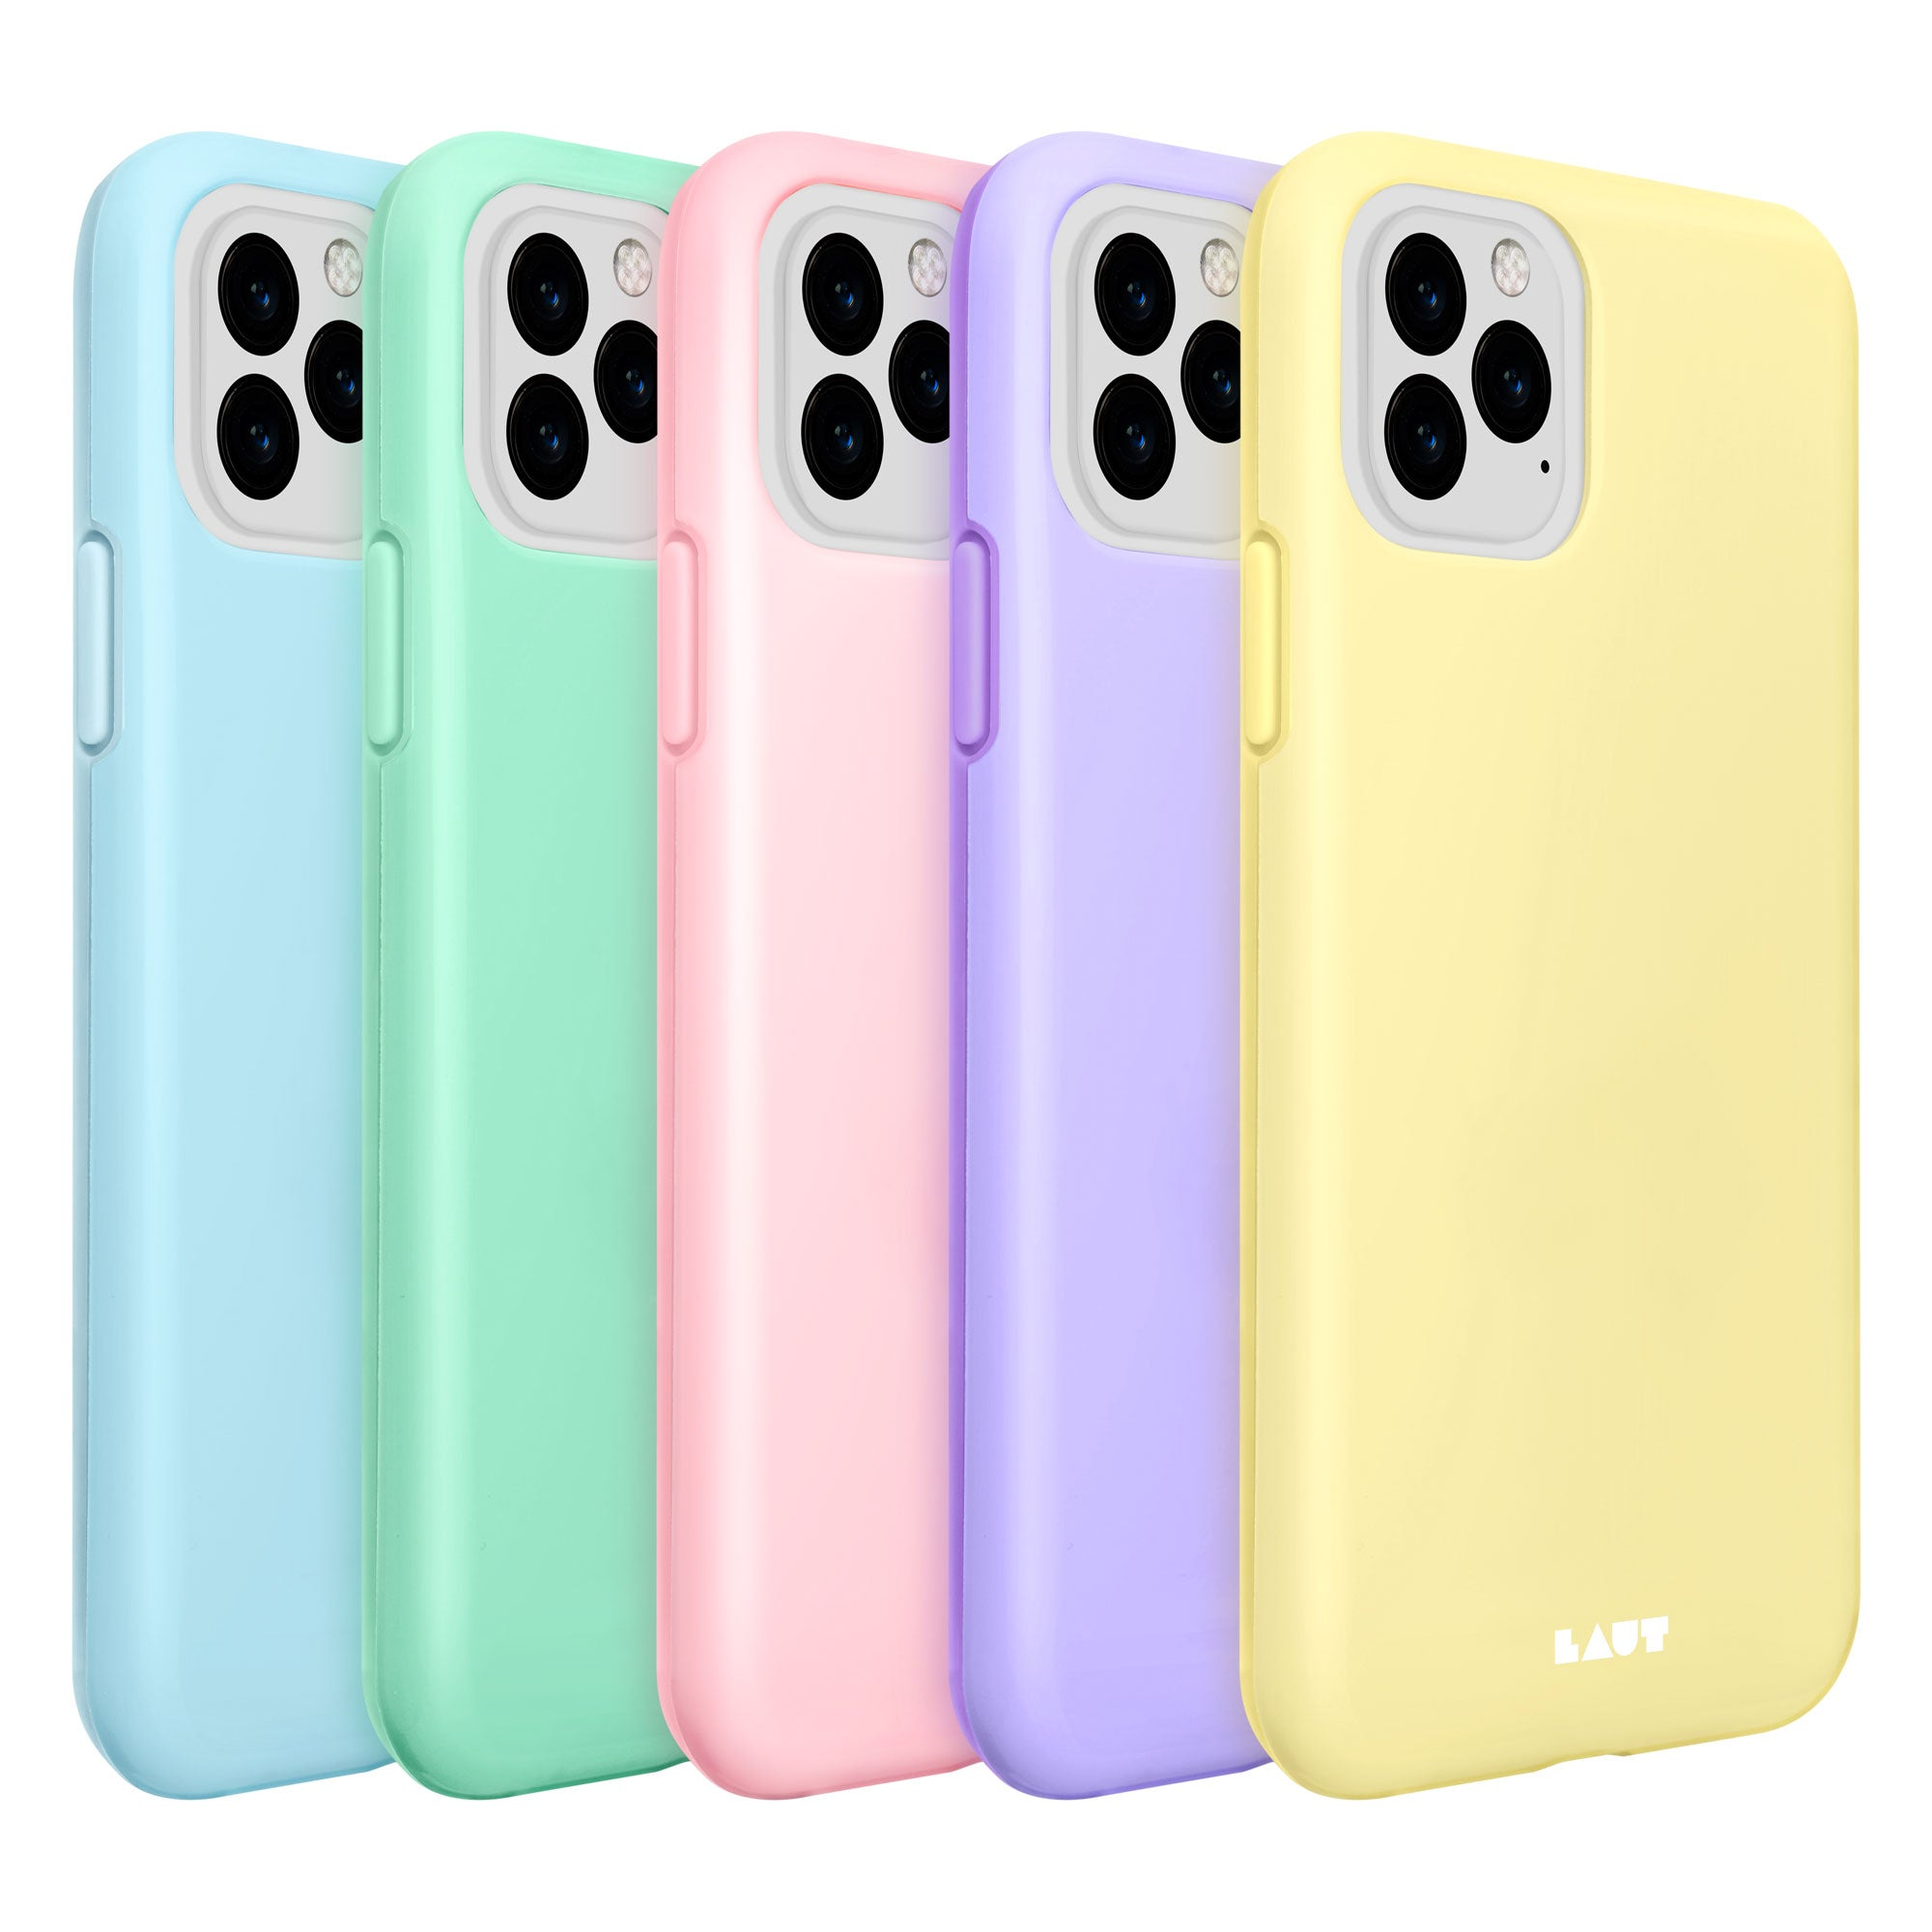 LAUT-HUEX PASTELS for iPhone 11 | iPhone 11 Pro | iPhone 11 Pro Max-Case-iPhone 11 / iPhone 11 Pro / iPhone 11 Pro Max